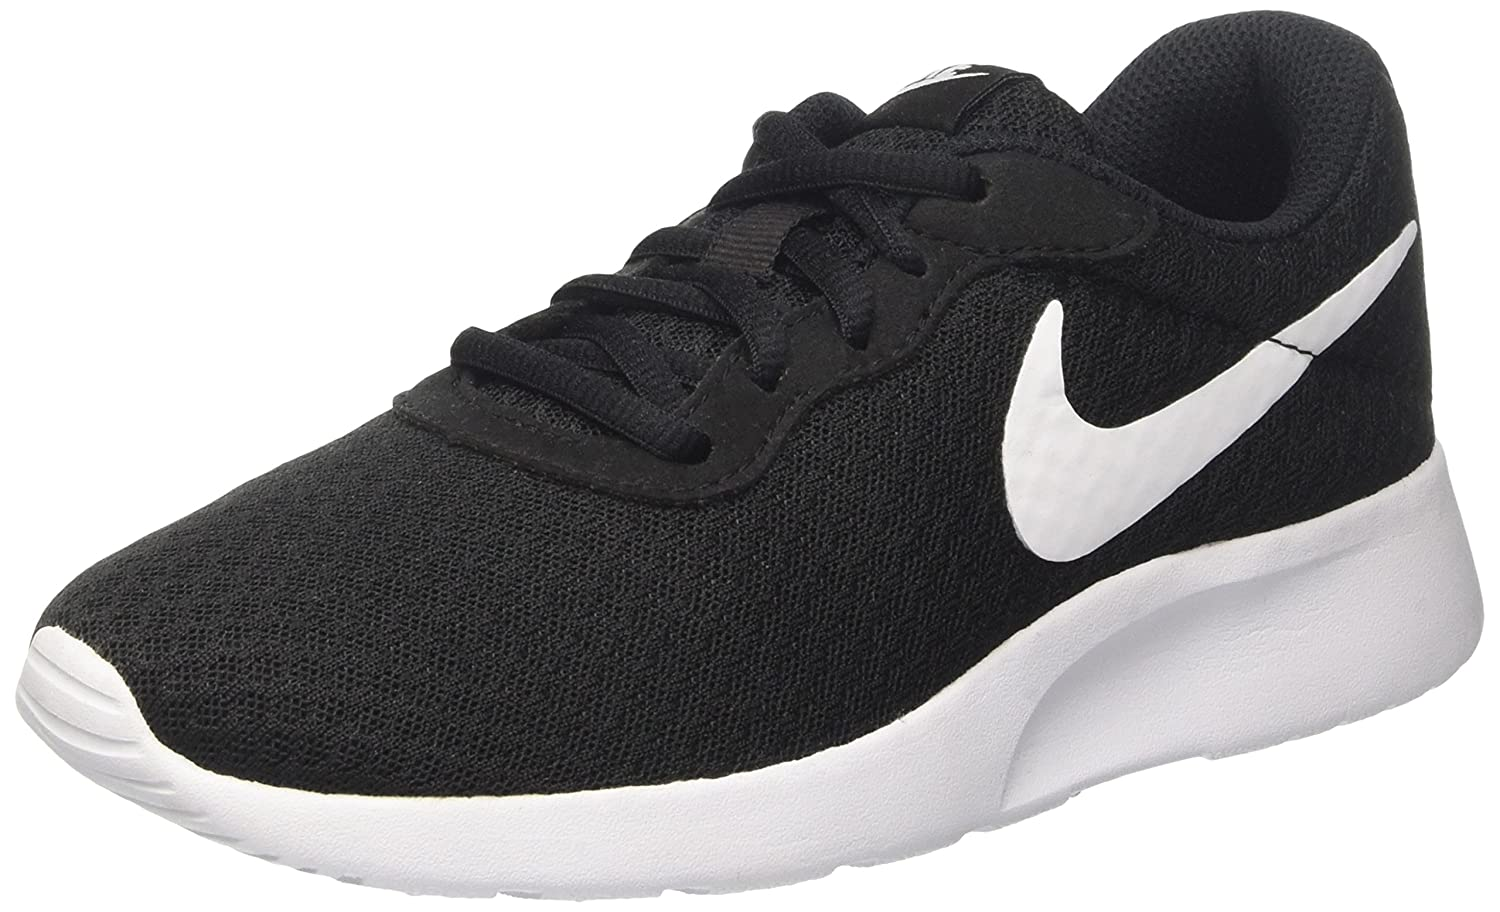 NIKE Women's Tanjun Running Shoes B004YD2JYE 5 B(M) US|Black/White